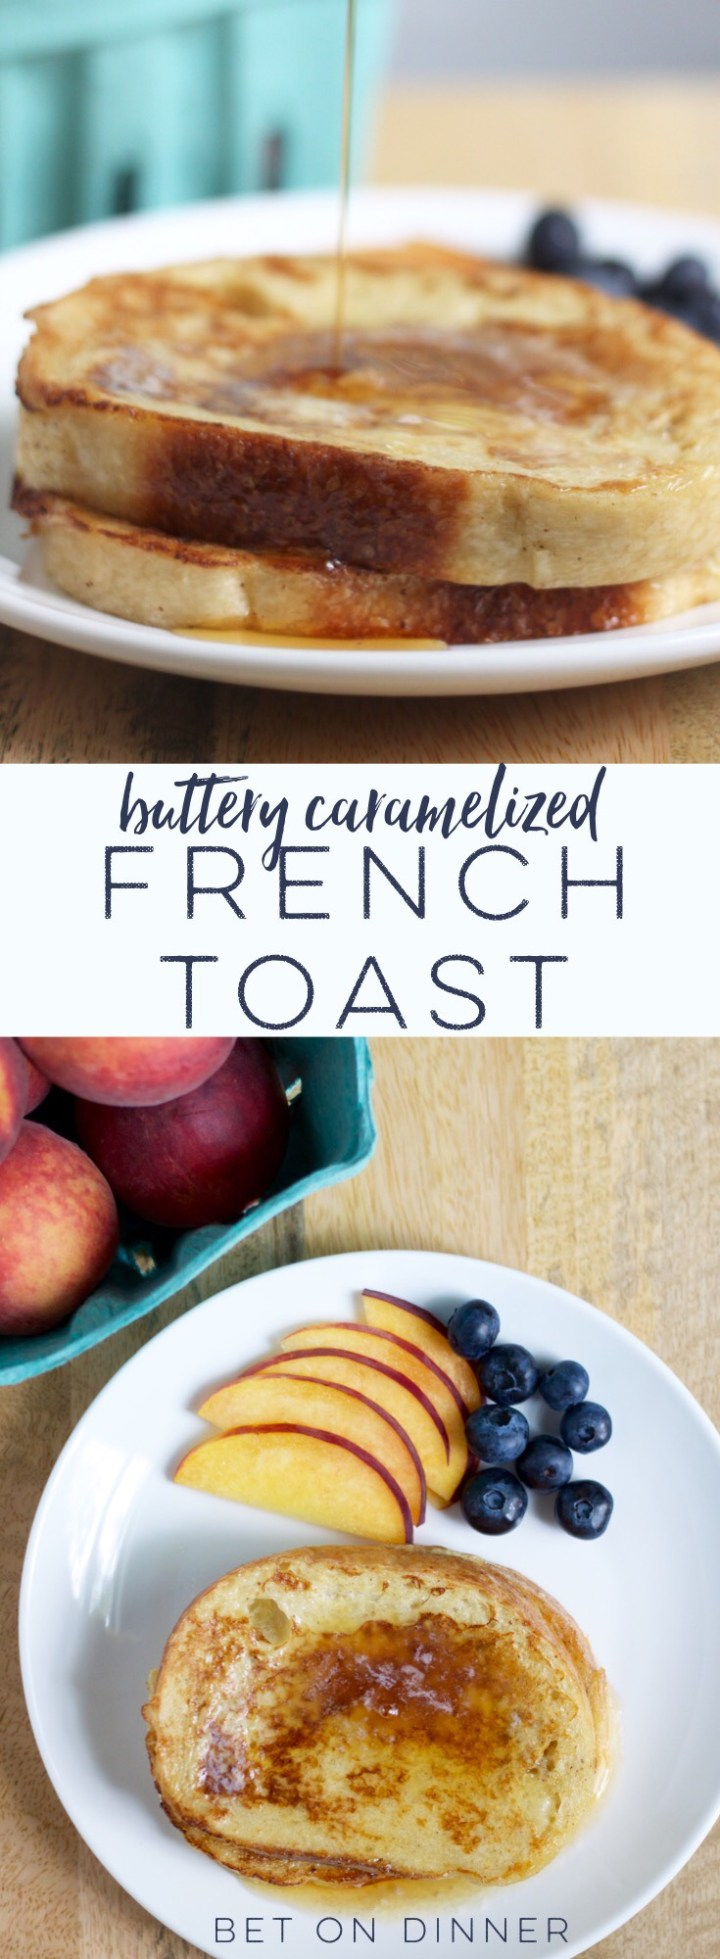 This French toast has the best soft, custardy interior, chewy crust, and buttery caramelized surface!